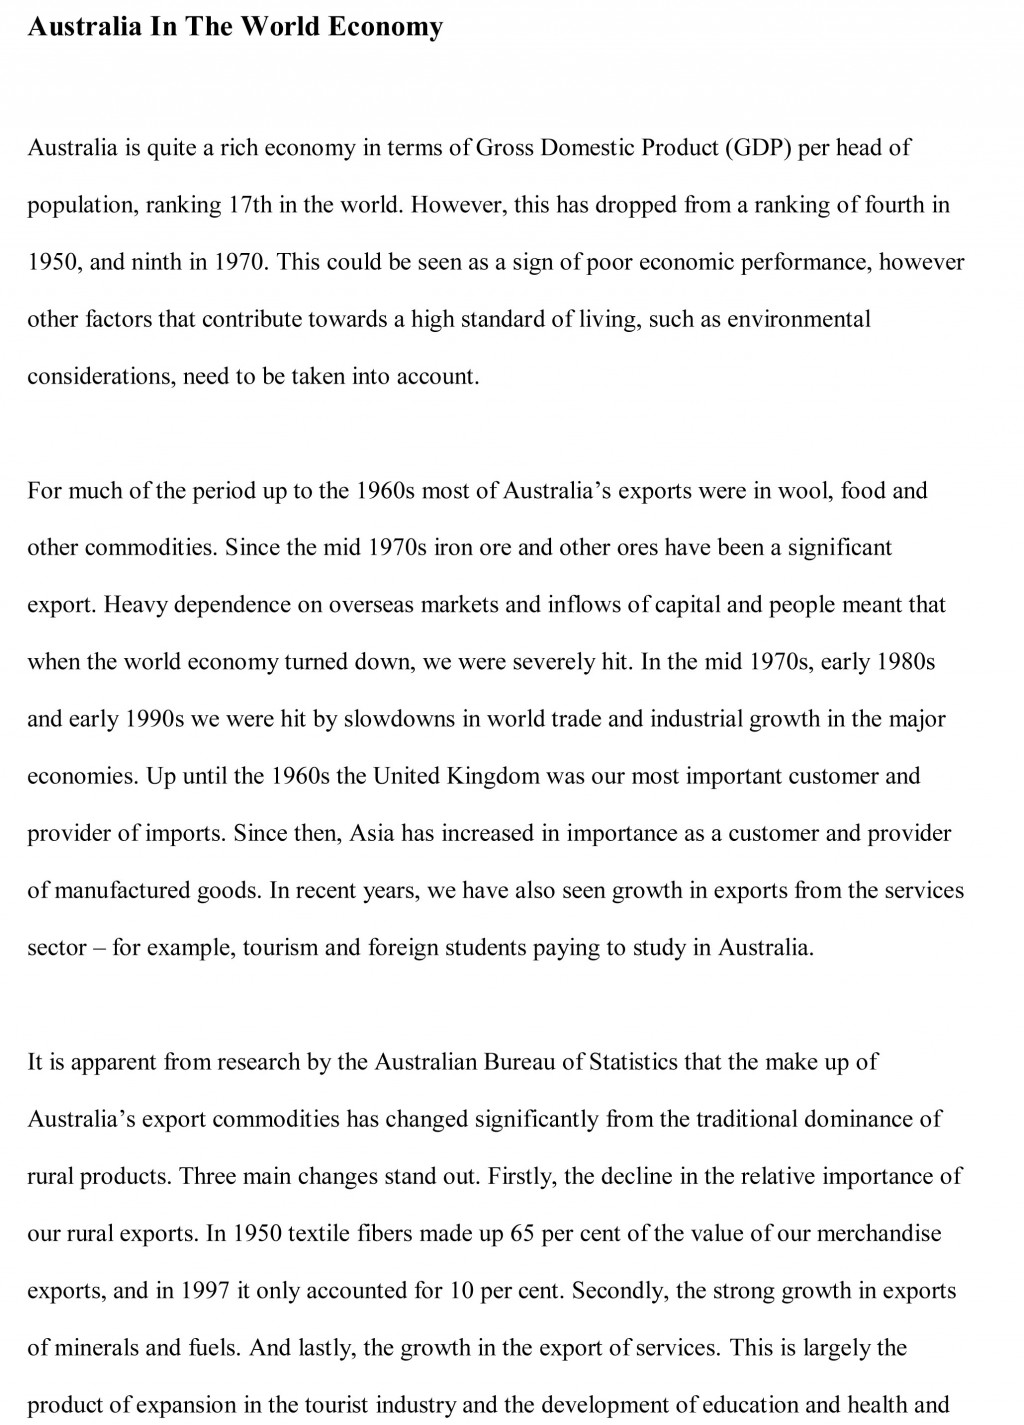 014 Globalization Conclusion Essay Example Economics Free Wonderful Large